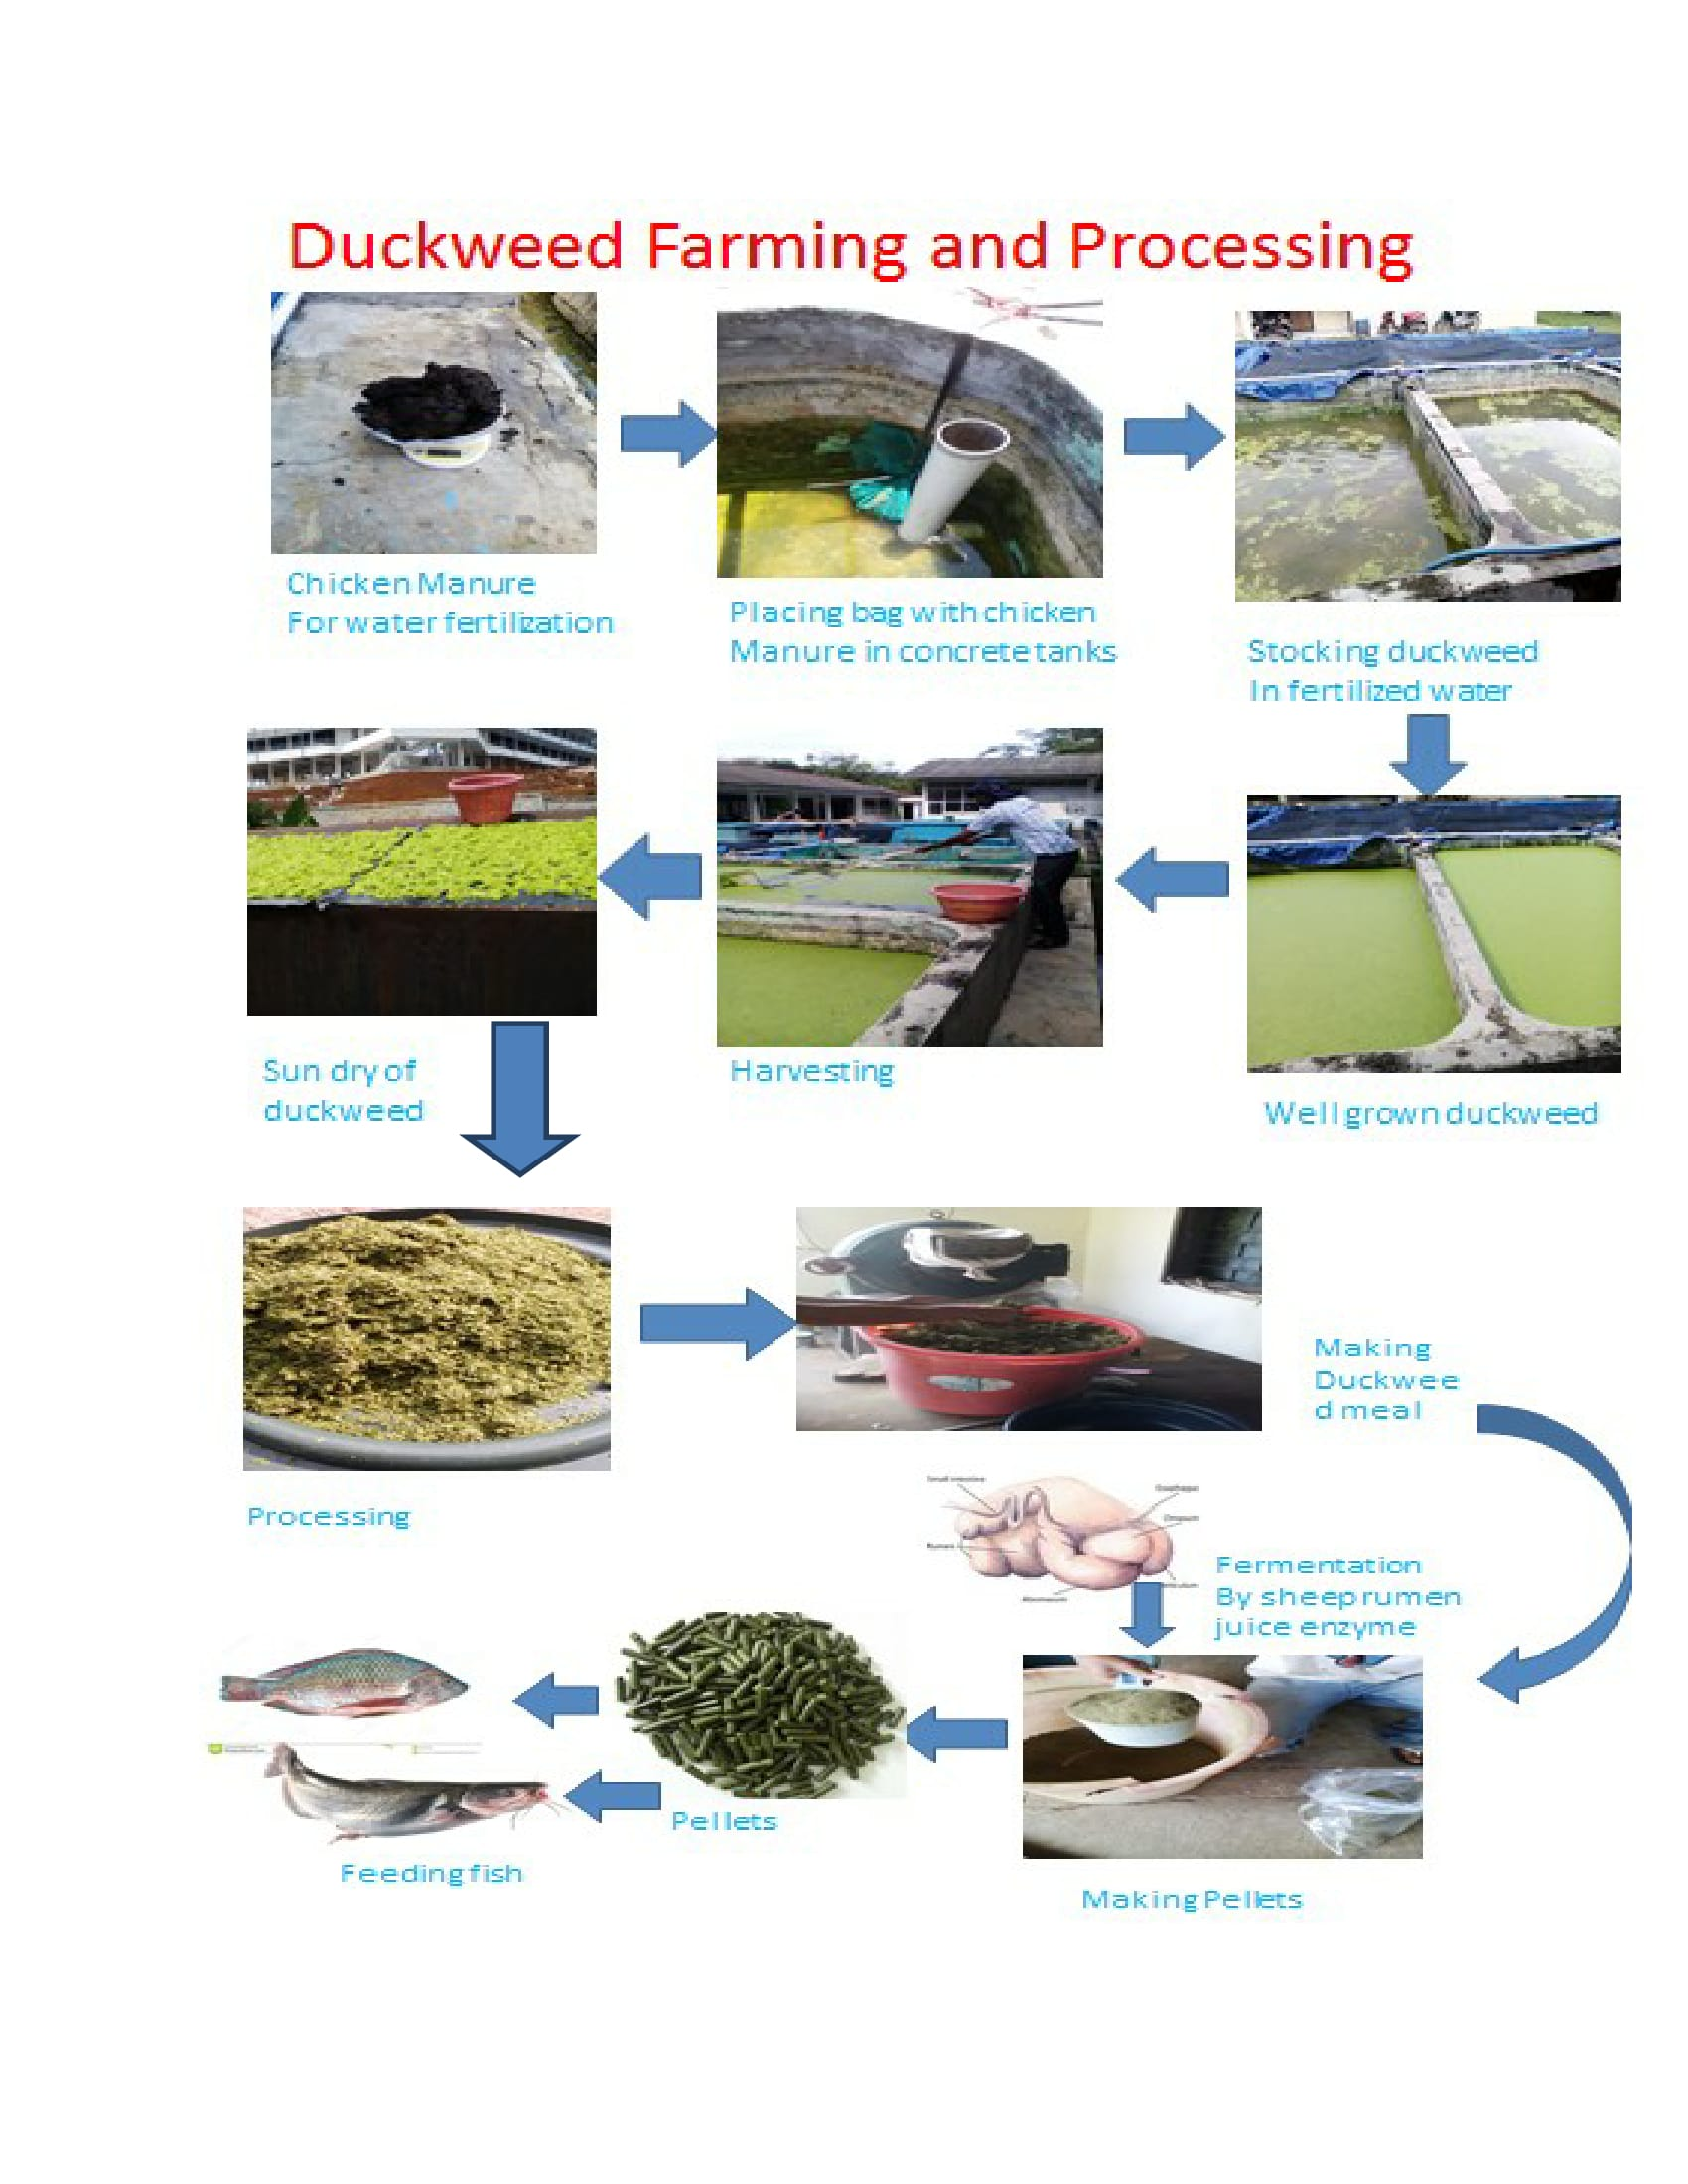 /srv/www/vhosts/user3101/html/entrepreneurship-campus.org/wp-content/uploads/2017/03/Farming-and-processing-of-duckweed..jpg